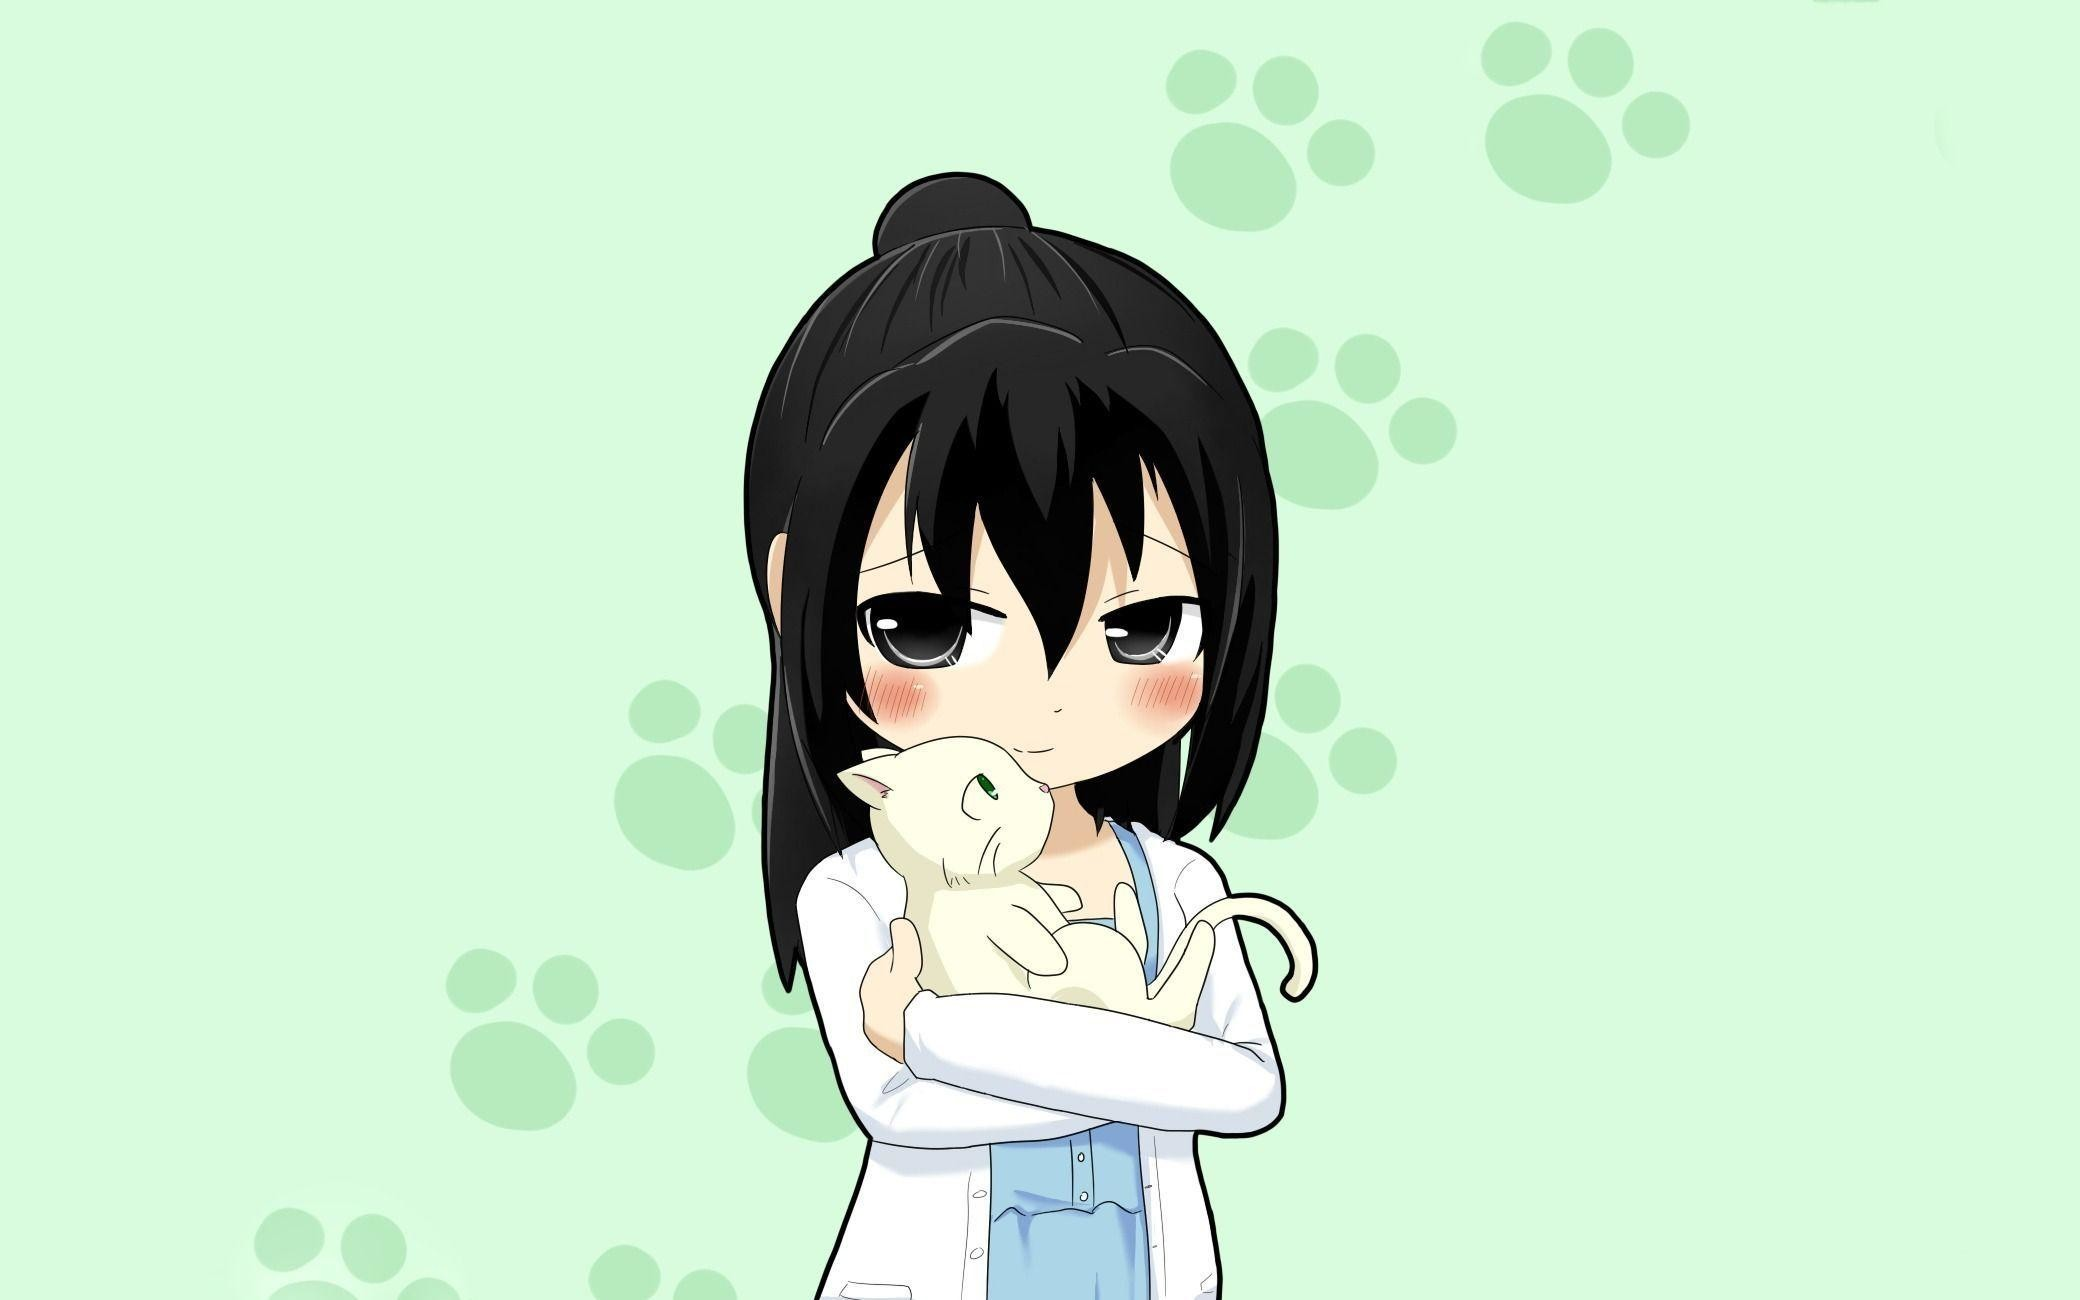 Cute Anime Kid With Cat Wallpaper – Free HD Wallpapers and HD .